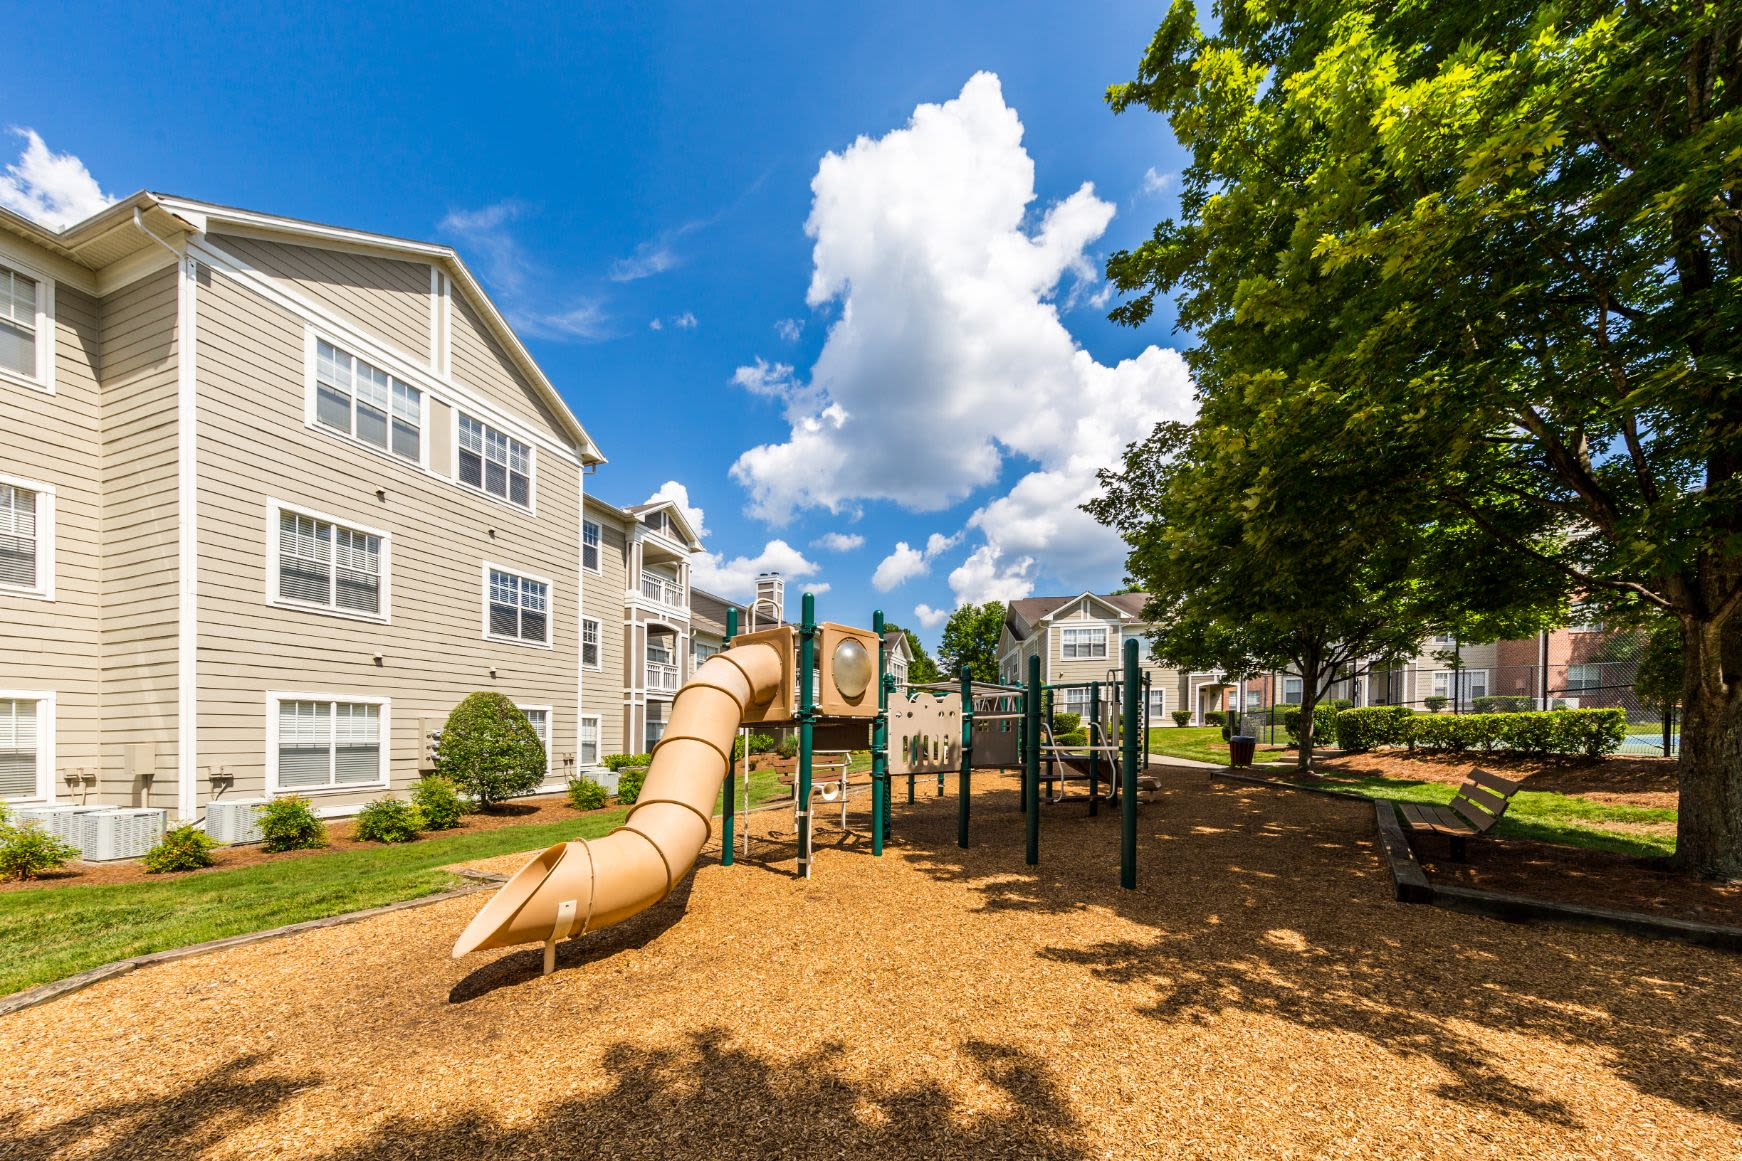 Playground at The Preserve at Ballantyne Commons in Charlotte, North Carolina